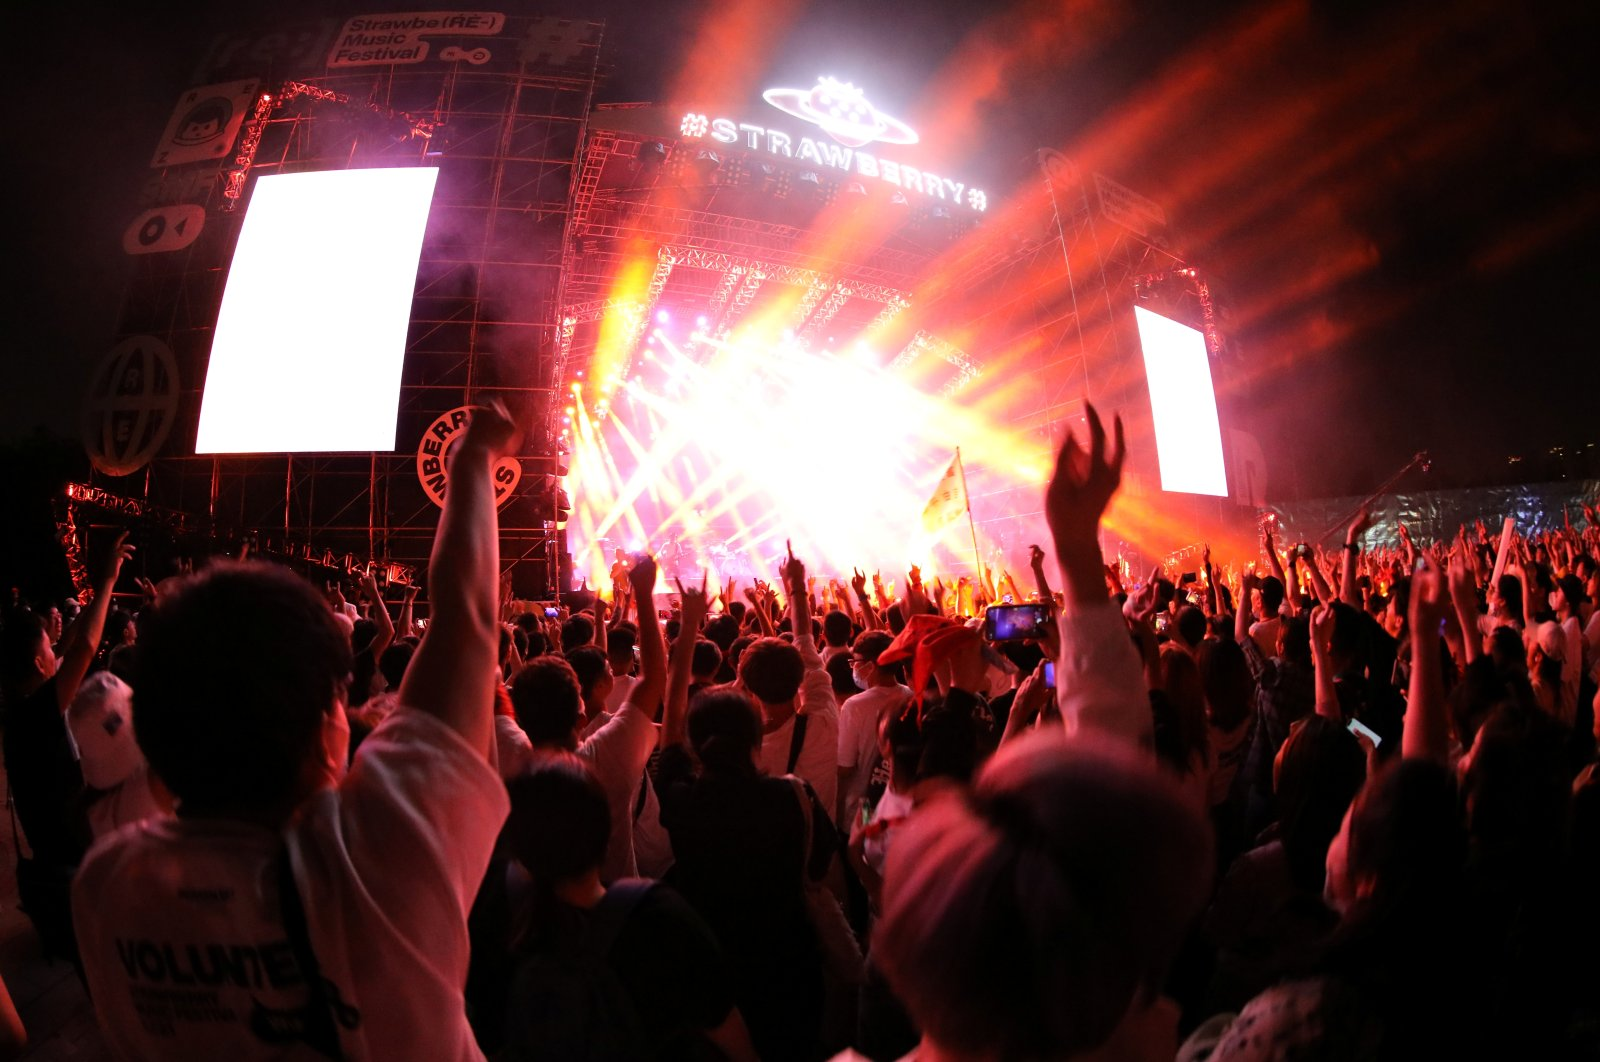 Fans attend a performance of a rock band at the Strawberry Music Festival during the Labor Day holiday in Wuhan, Hubei Province, China, May 1, 2021. (Reuters Photo)